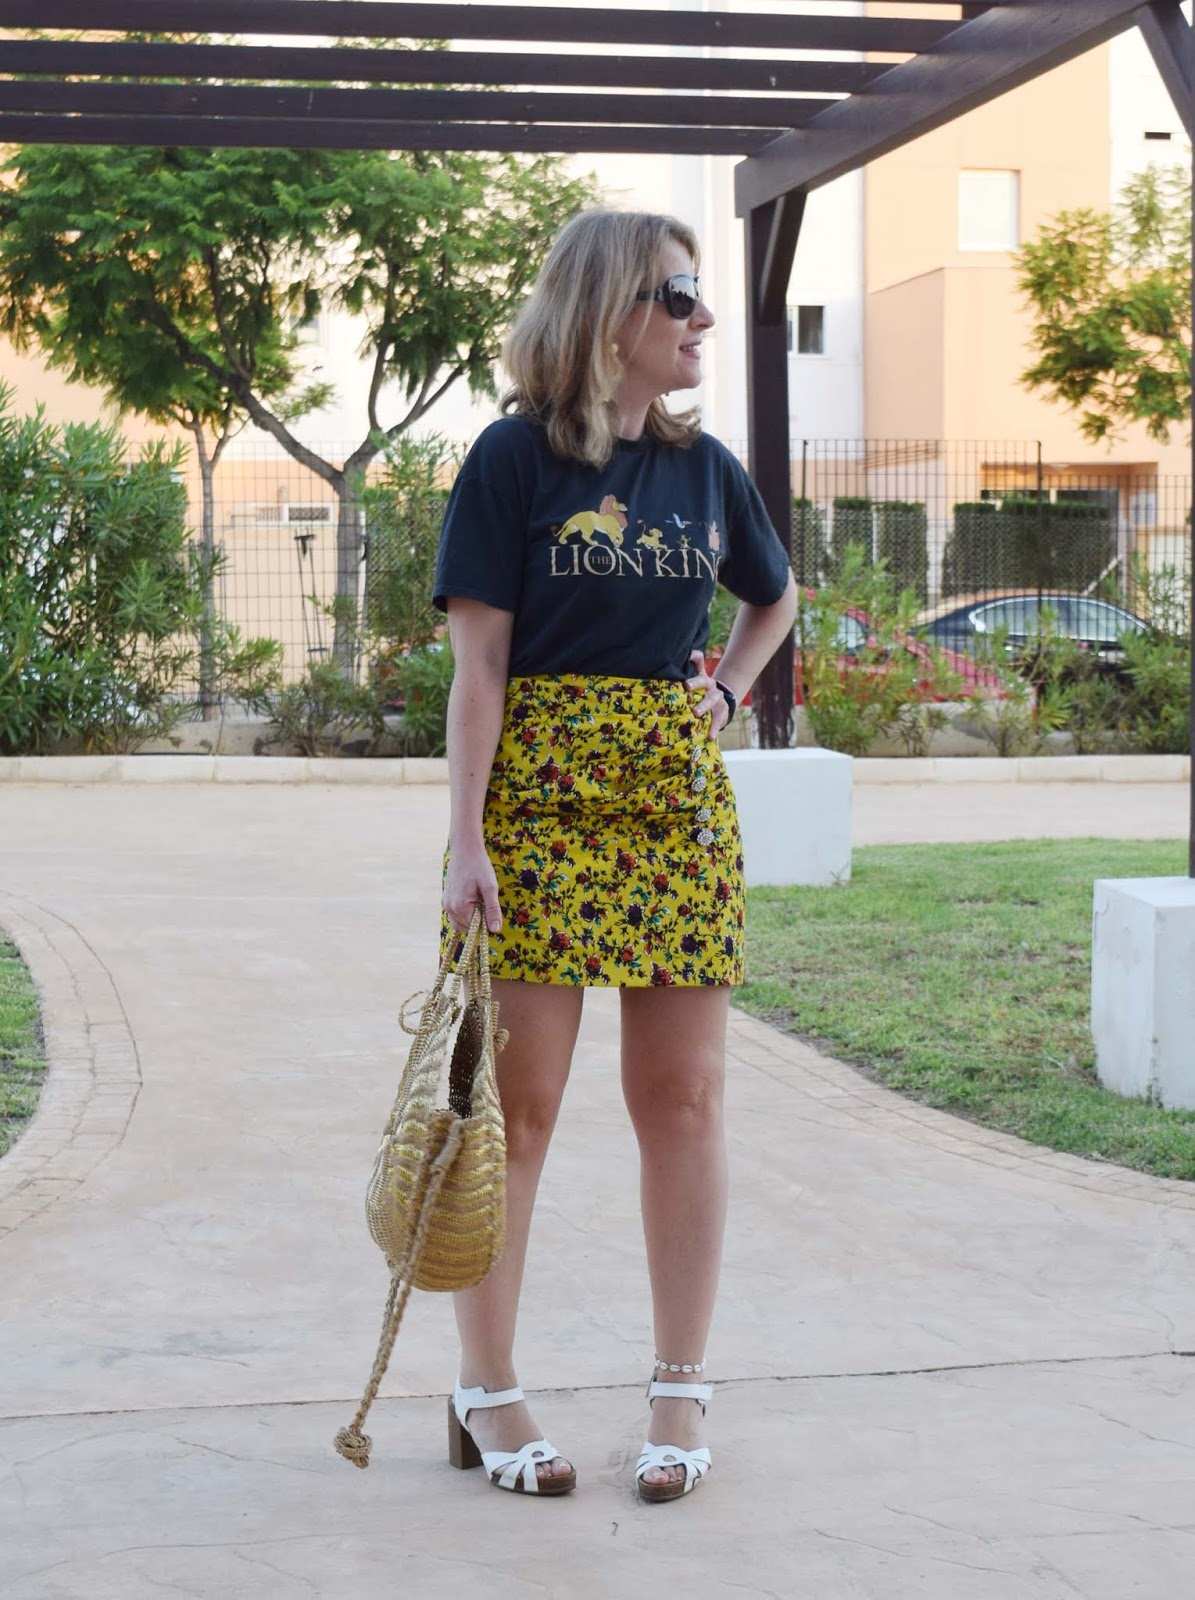 Mini_skirt_Tshirt_Lion_king